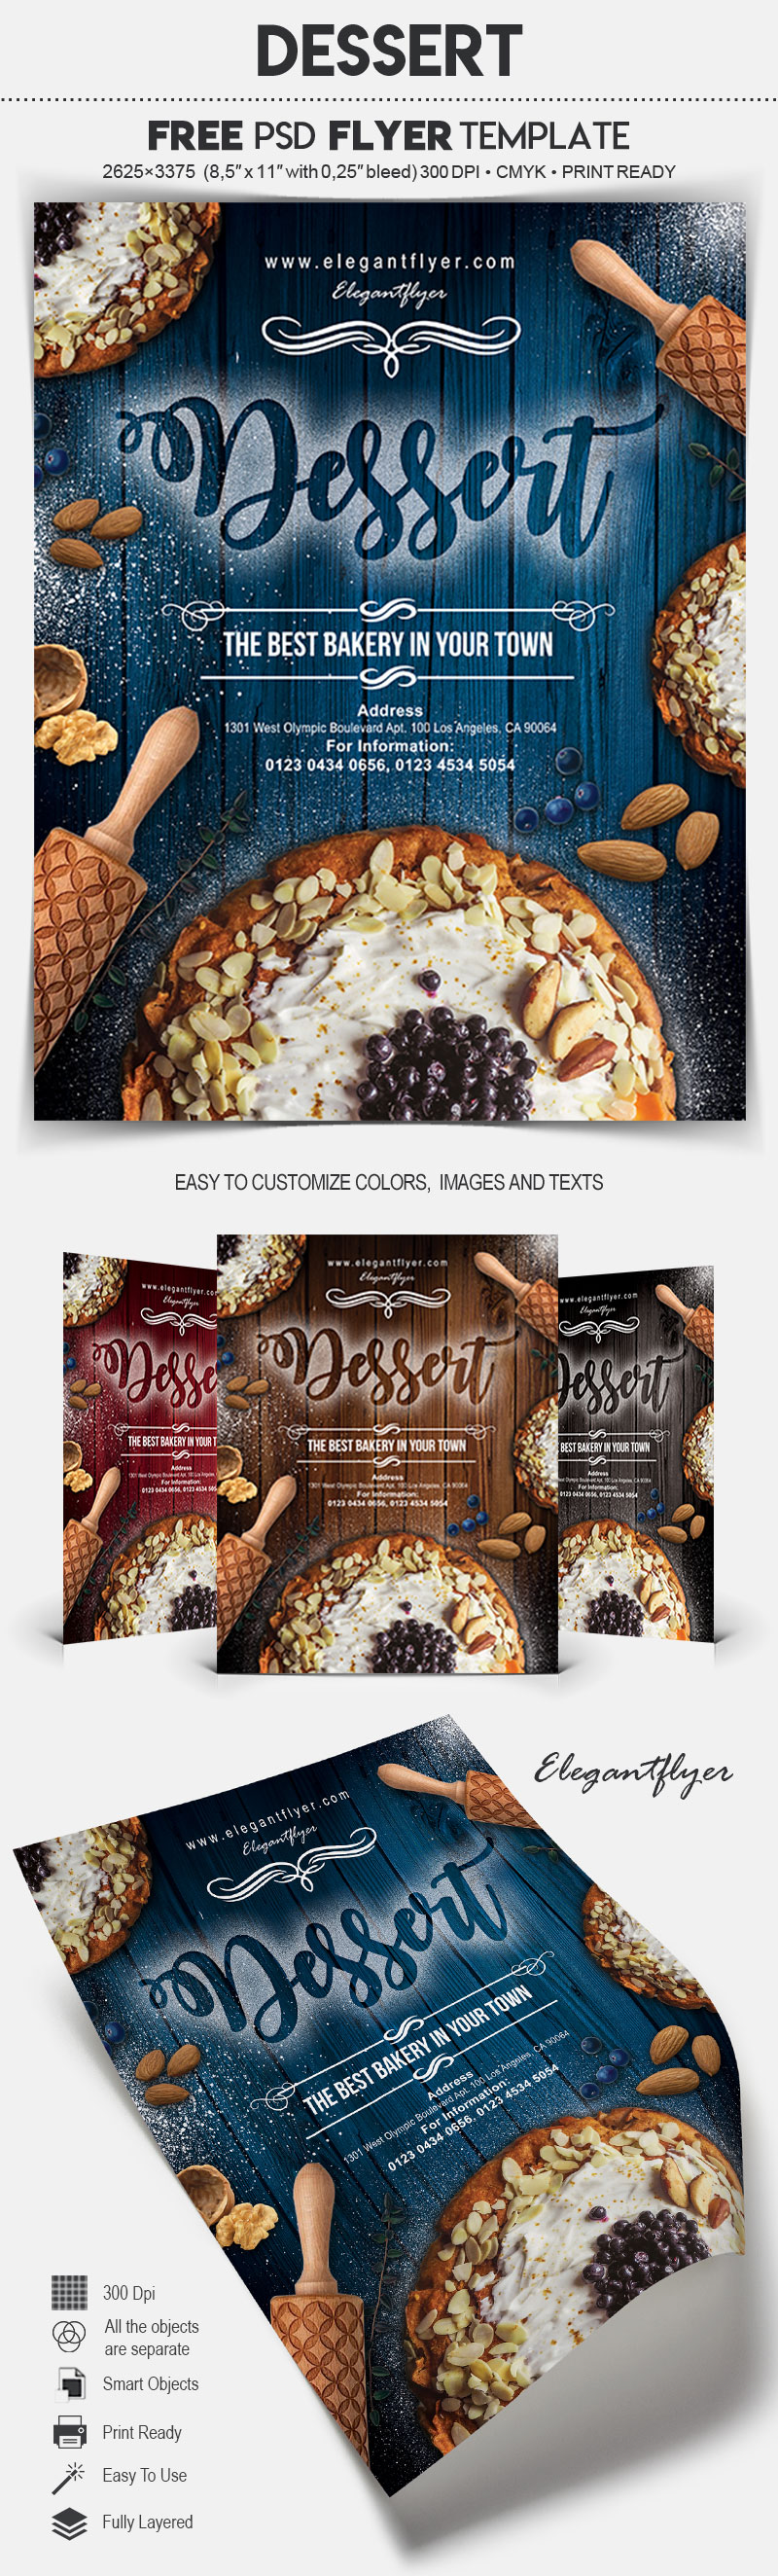 Free Dessert Food Flyer PSD Template